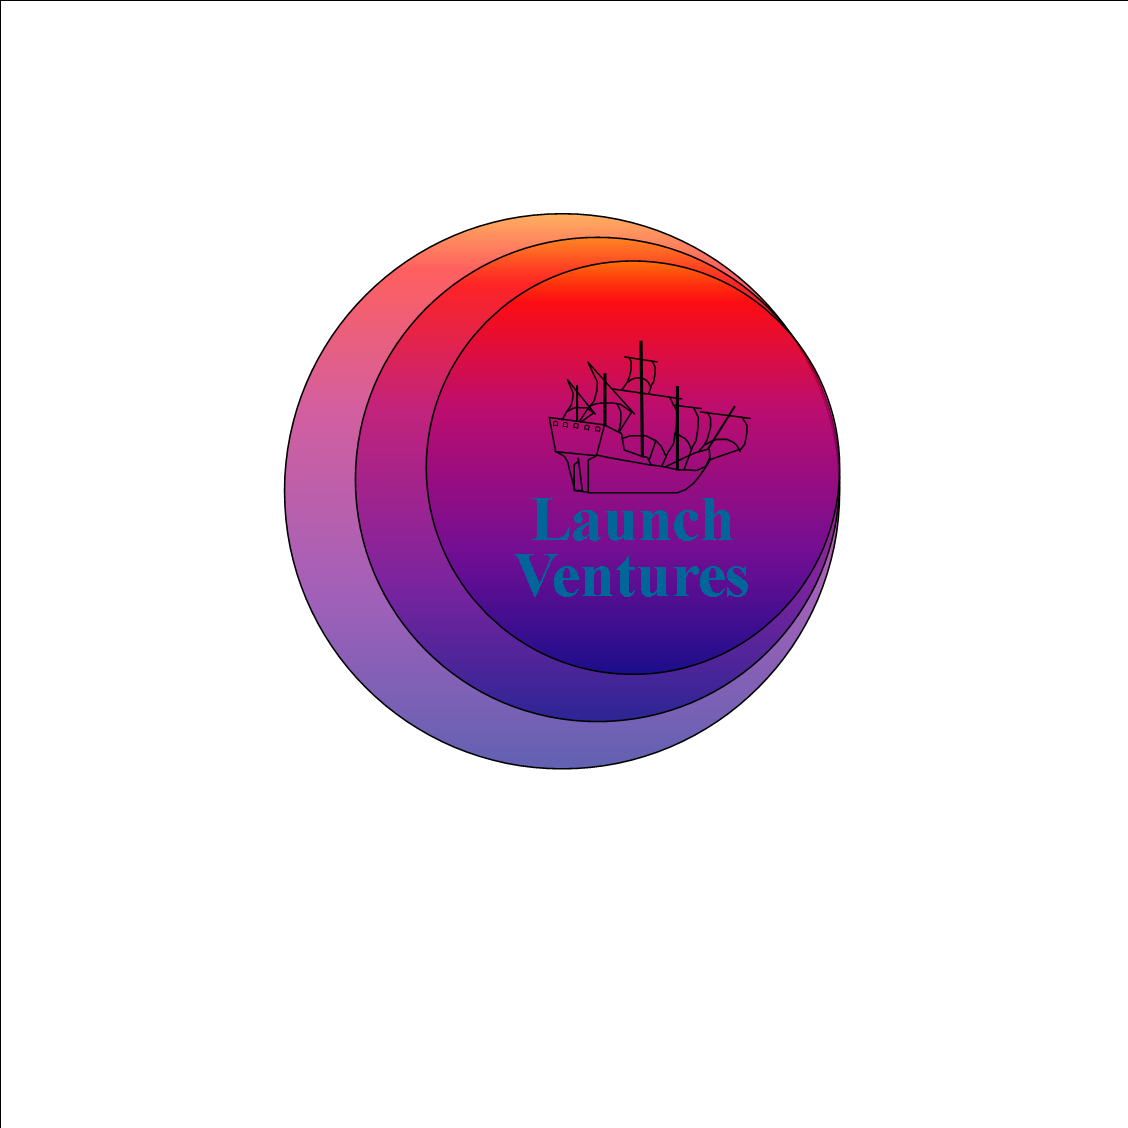 Logo Design by nk - Entry No. 204 in the Logo Design Contest Launch Ventures.